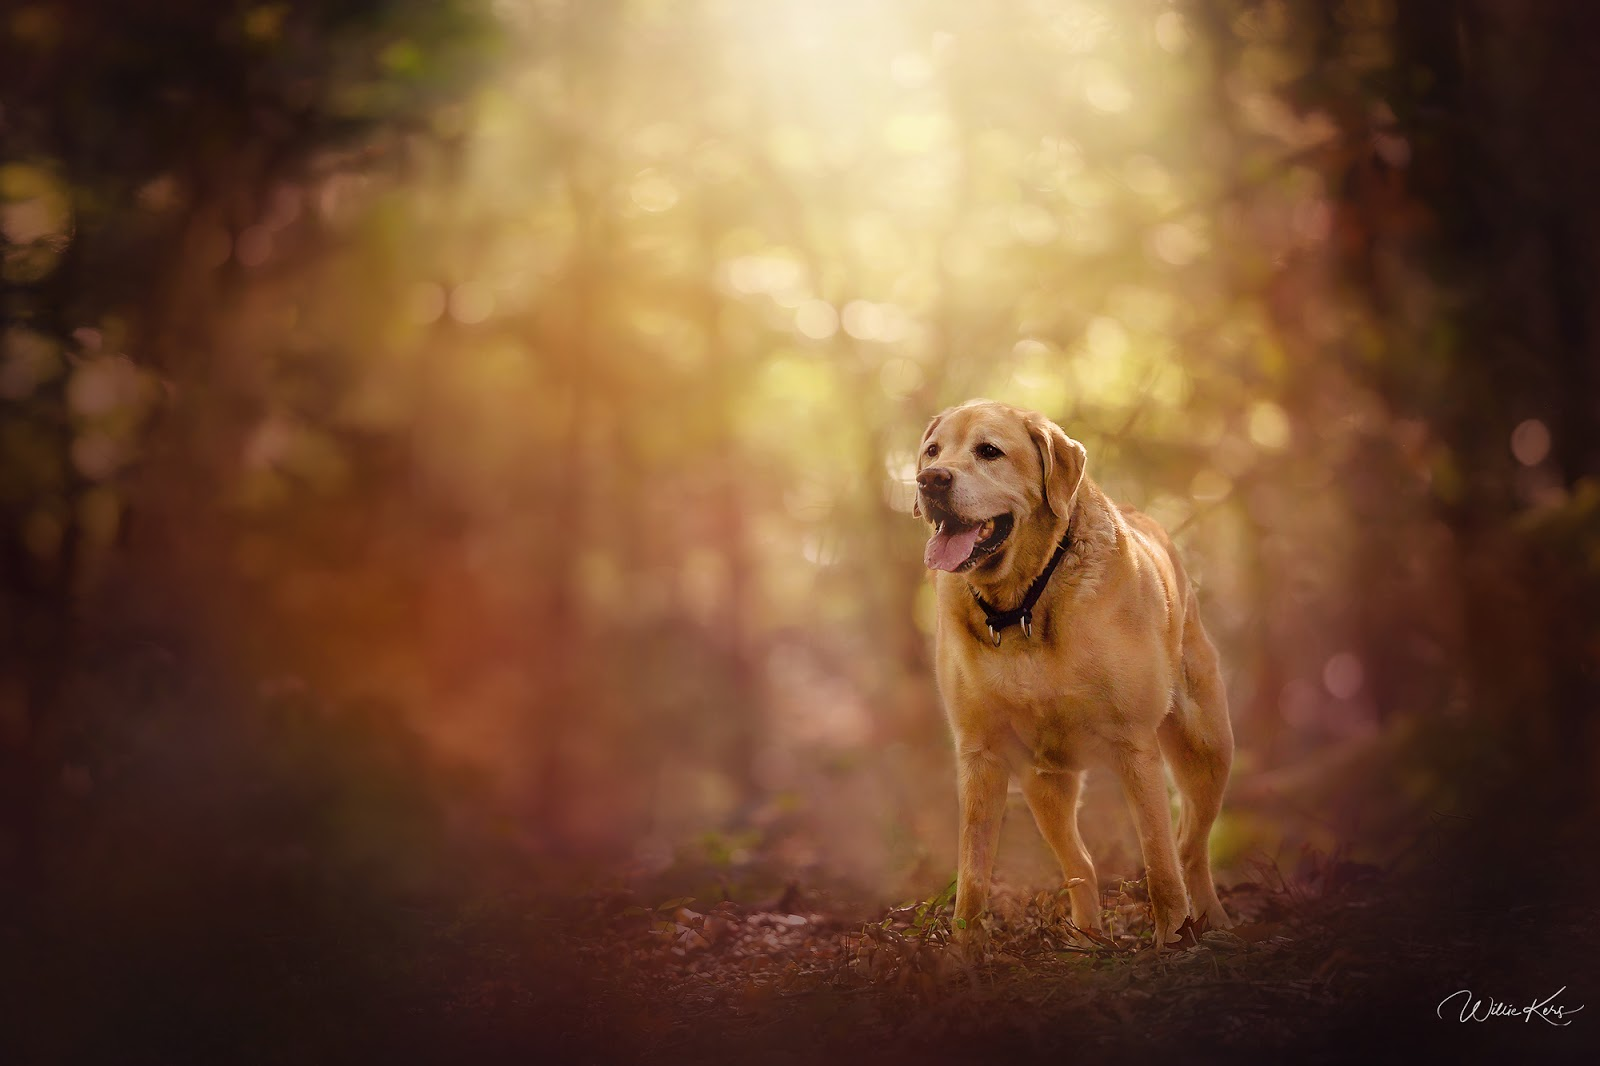 portrait of a large labrador dog standing in an autumn forest during sunset by wille kers